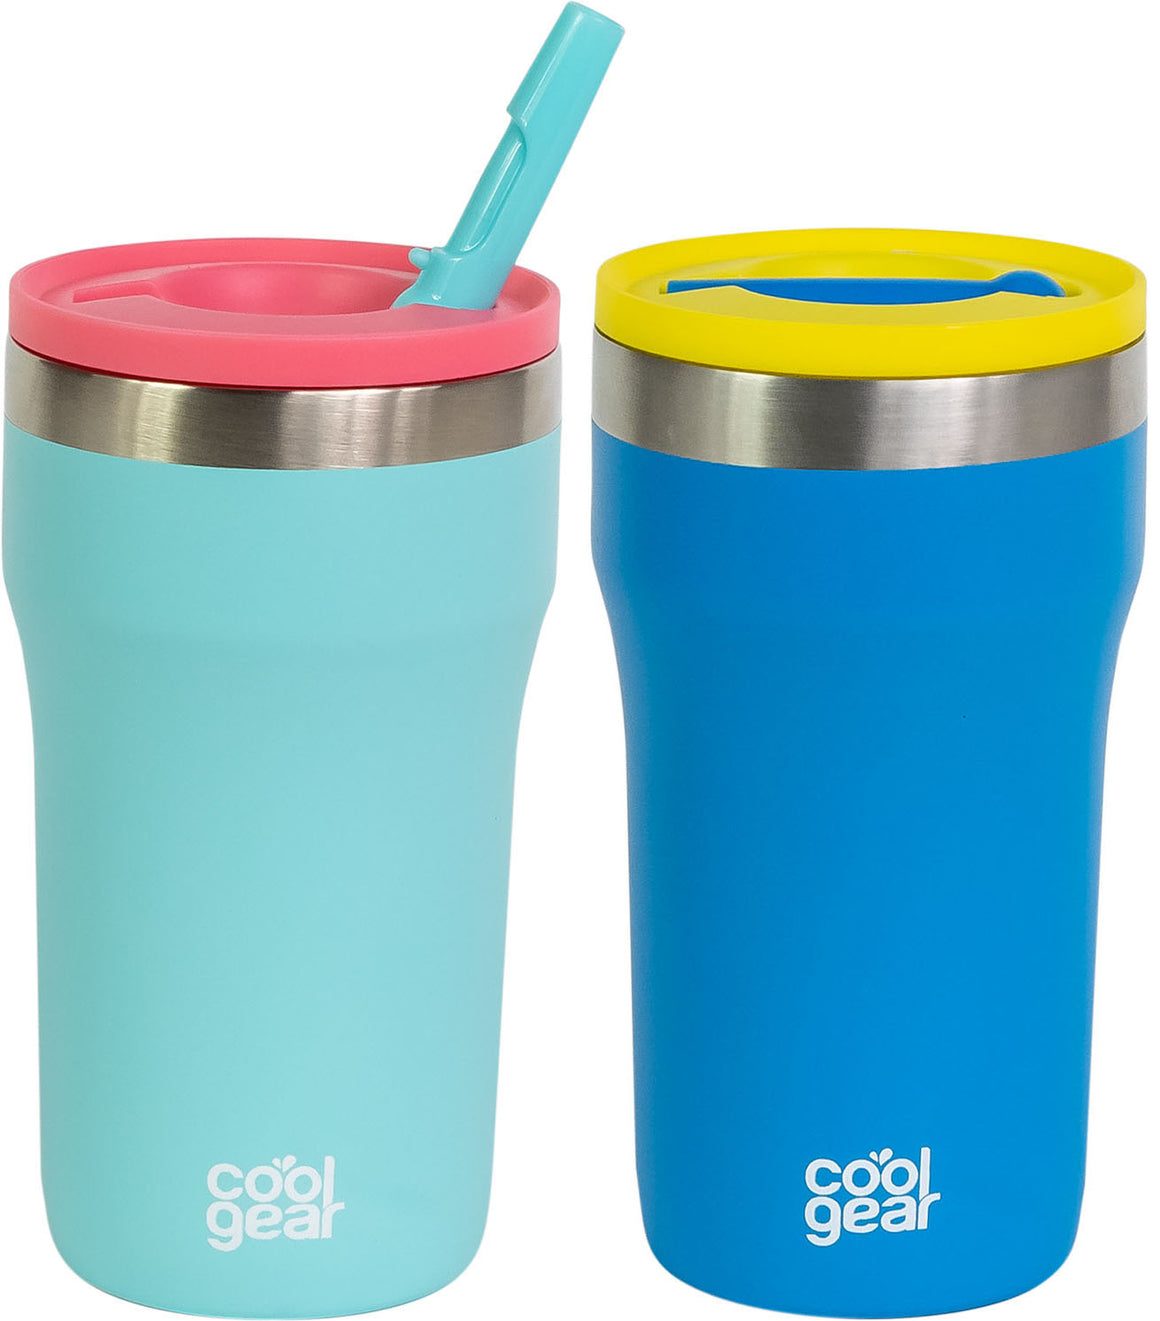 2 Pack COOL GEAR Eclipse 12oz Stainless Steel Tumbler | Pull up sipper